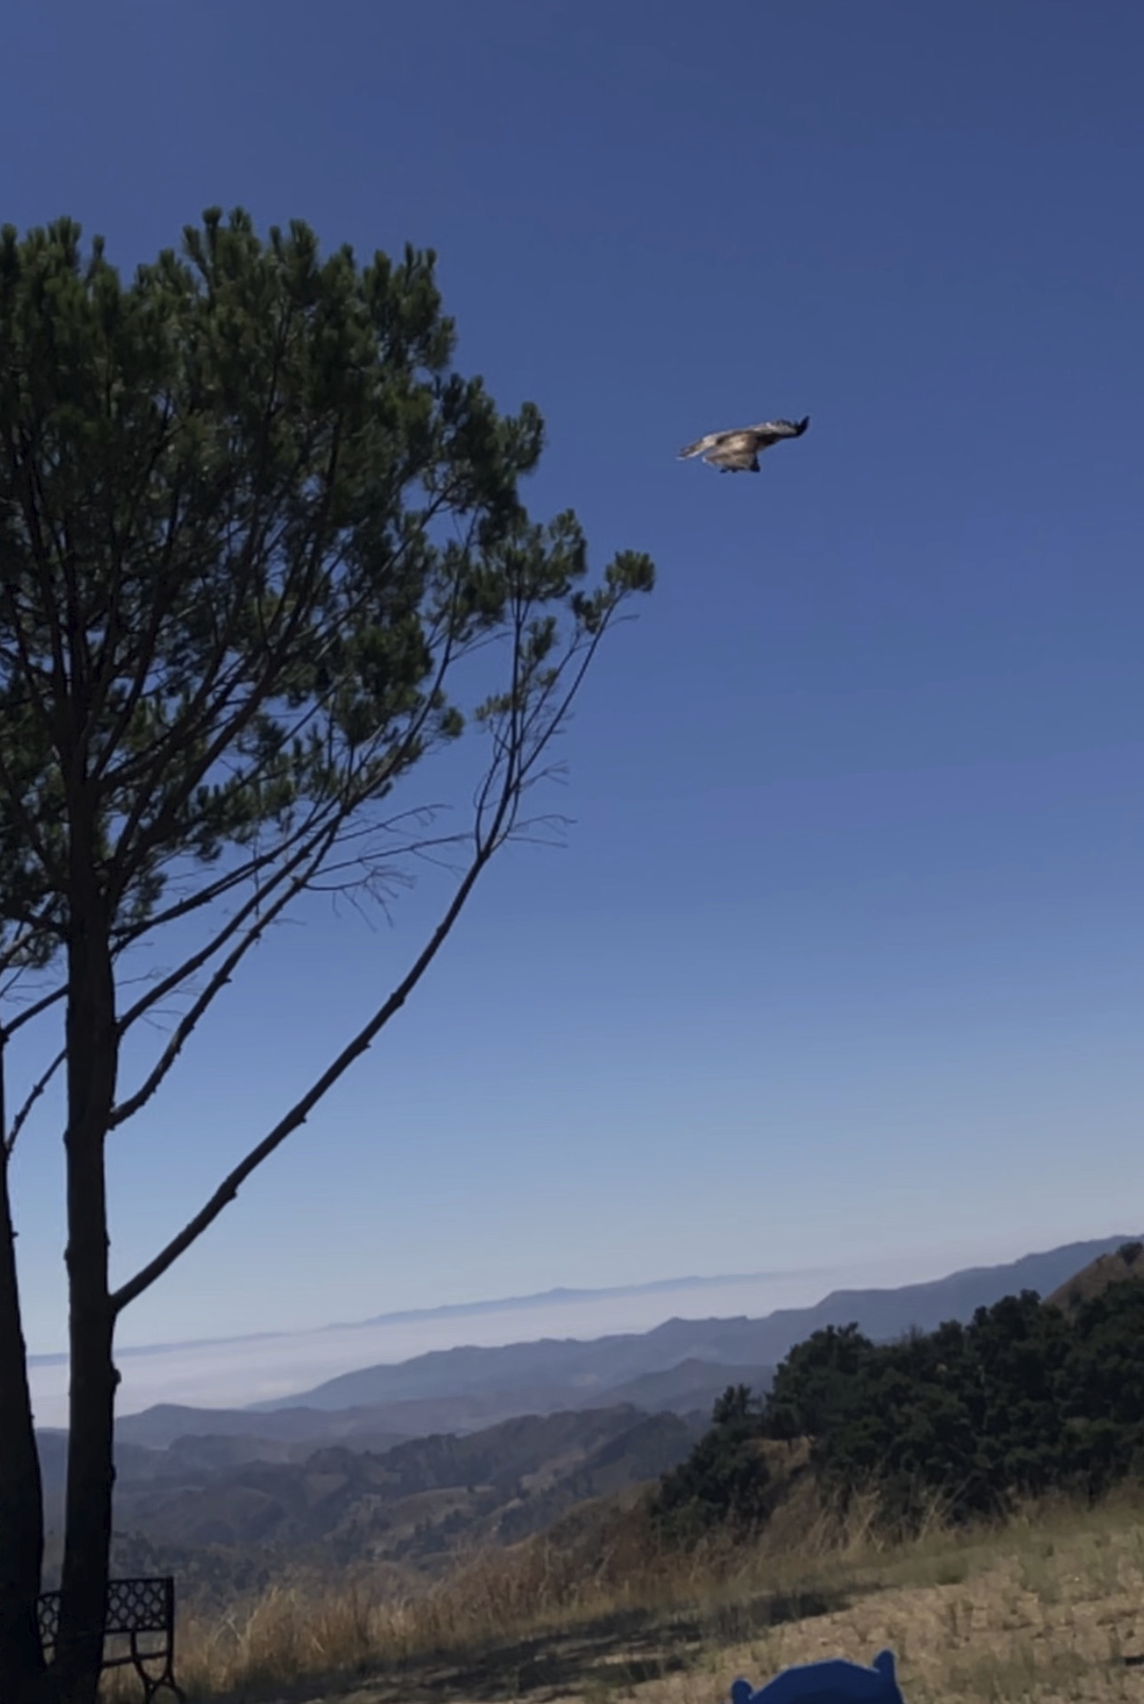 IN FLIGHT after its release at Avatar's Point, the American Kestrel soars about the valley below. The Ojai Raptor Center selected this spot at Meher Mount to release the two newly rehabilitated raptors — a Red-Tailed Hawk and an American Kestrel. (Photo: Cassandra Bramucci, August 15, 2019)